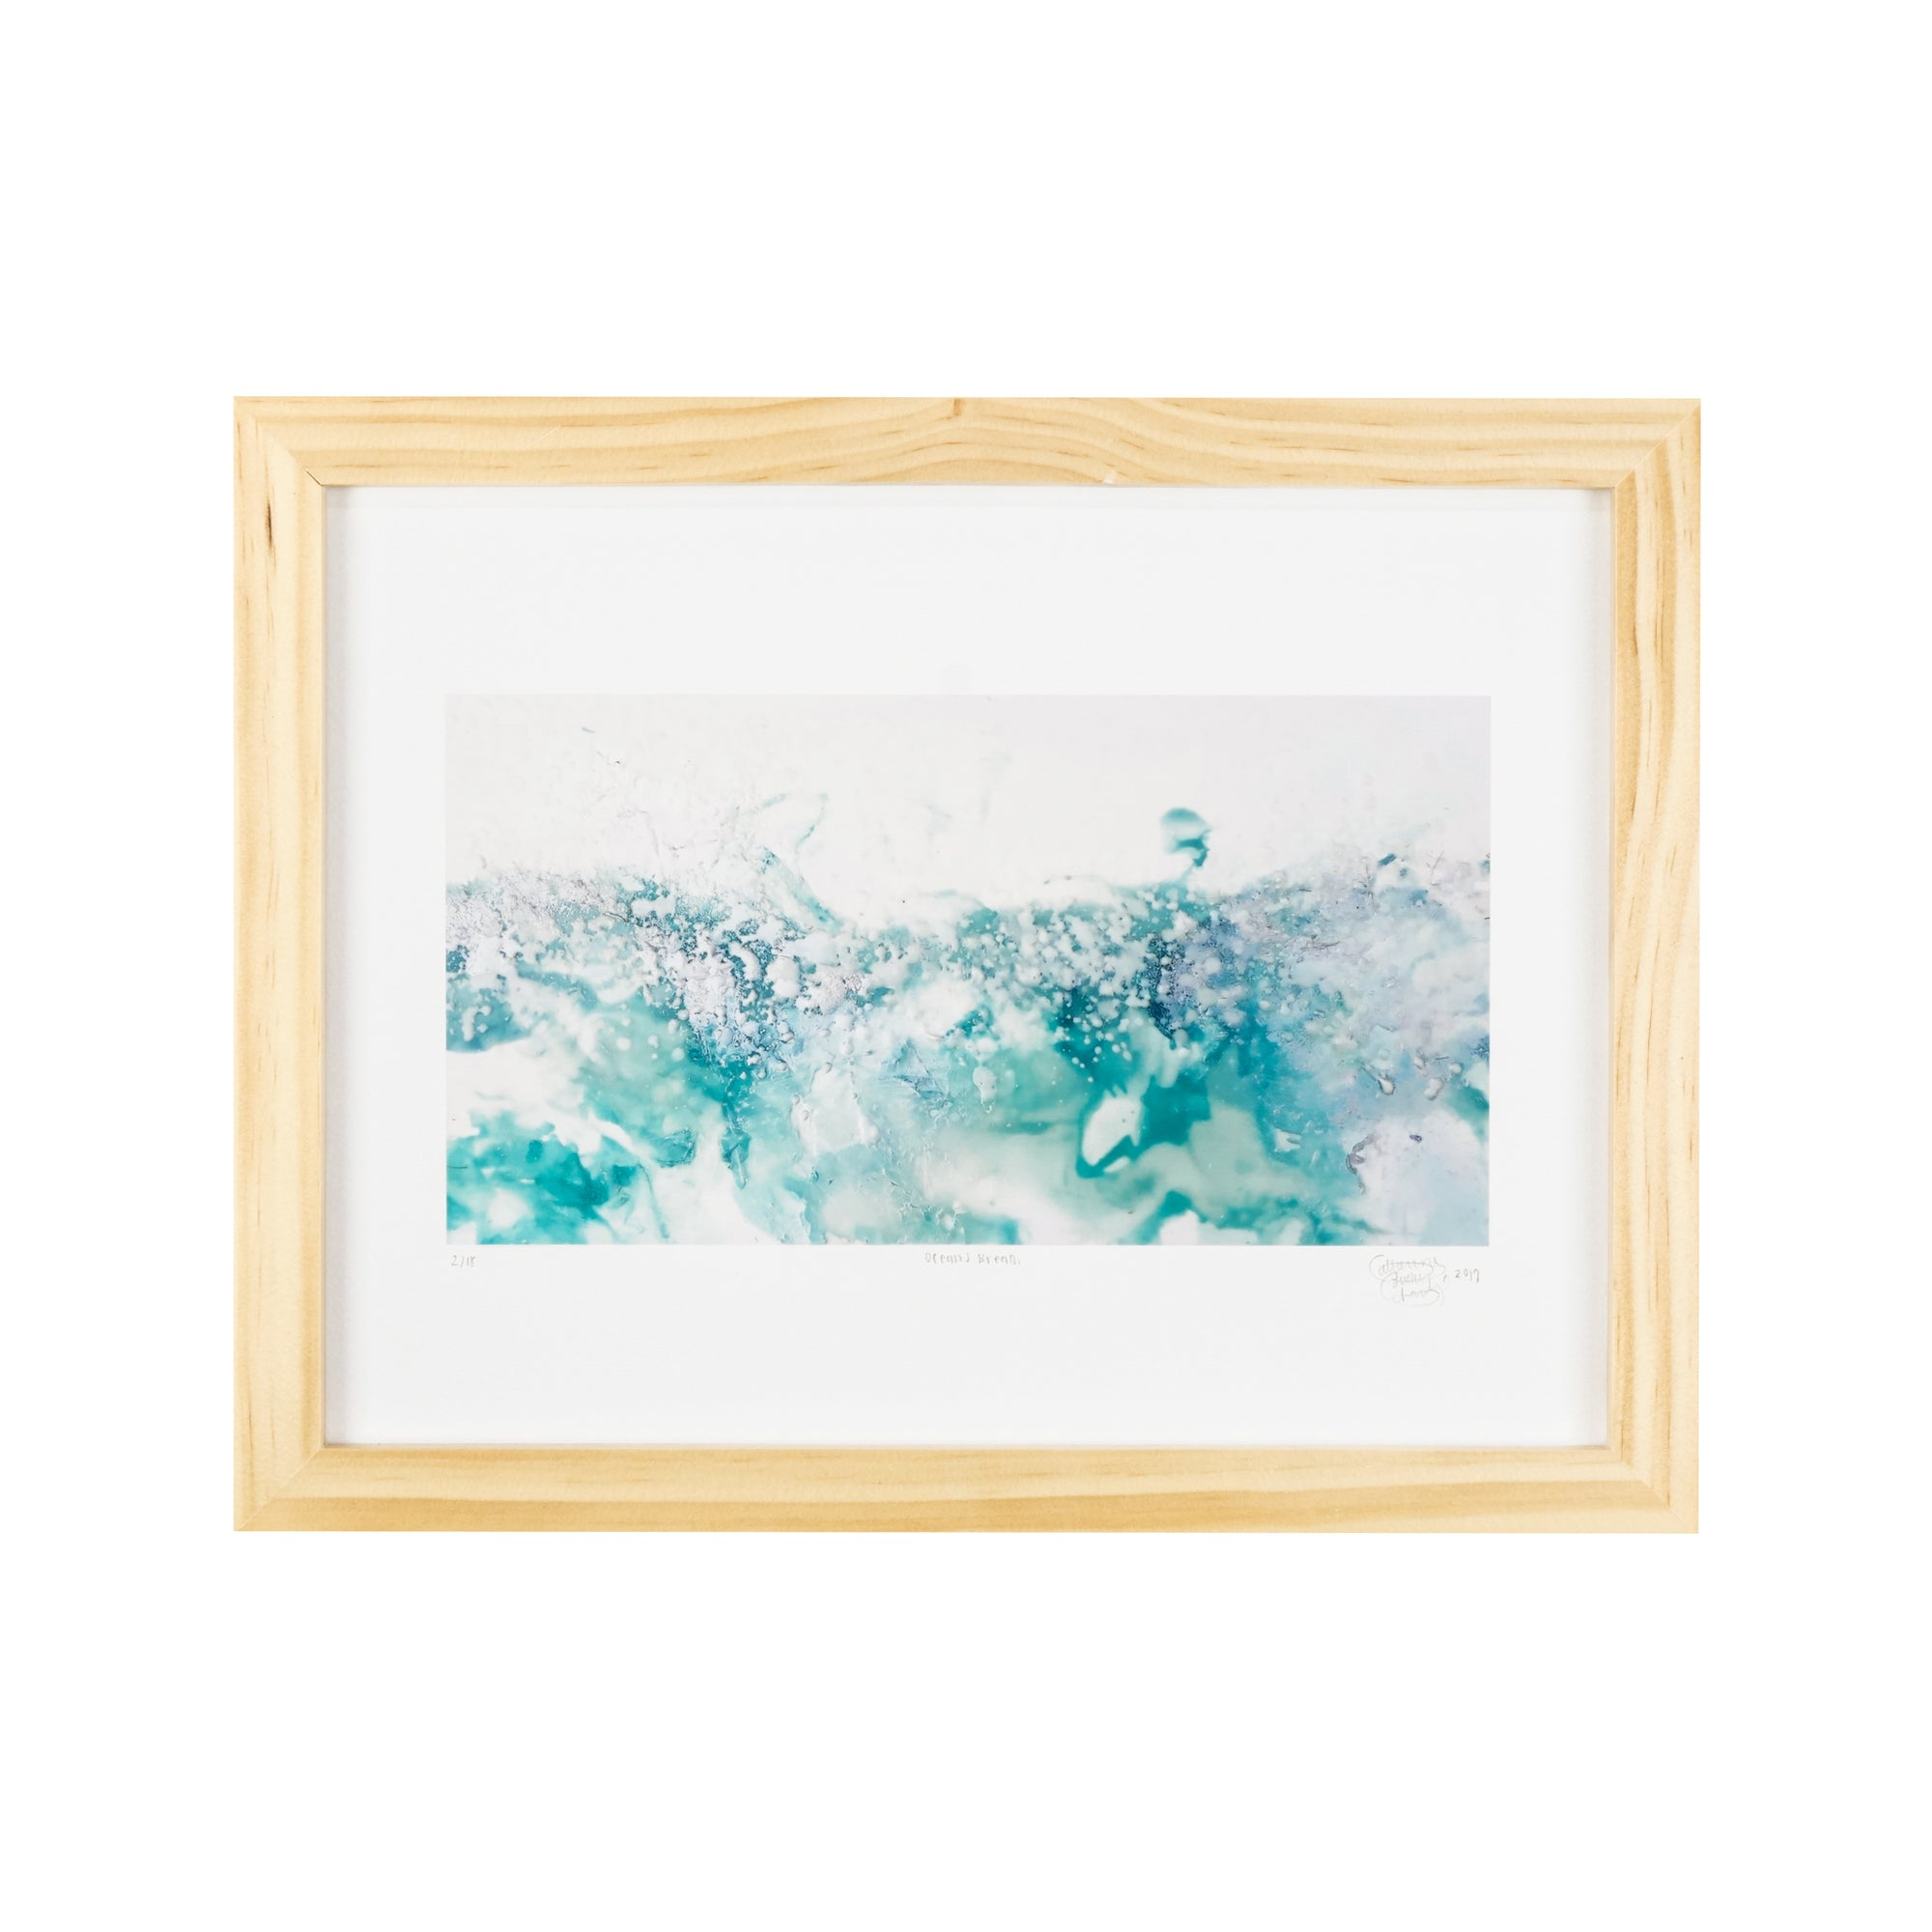 """Ocean's Breath"" - 9 x 12 inches - Limited Edition Prints by Catherine Lucky Chang"